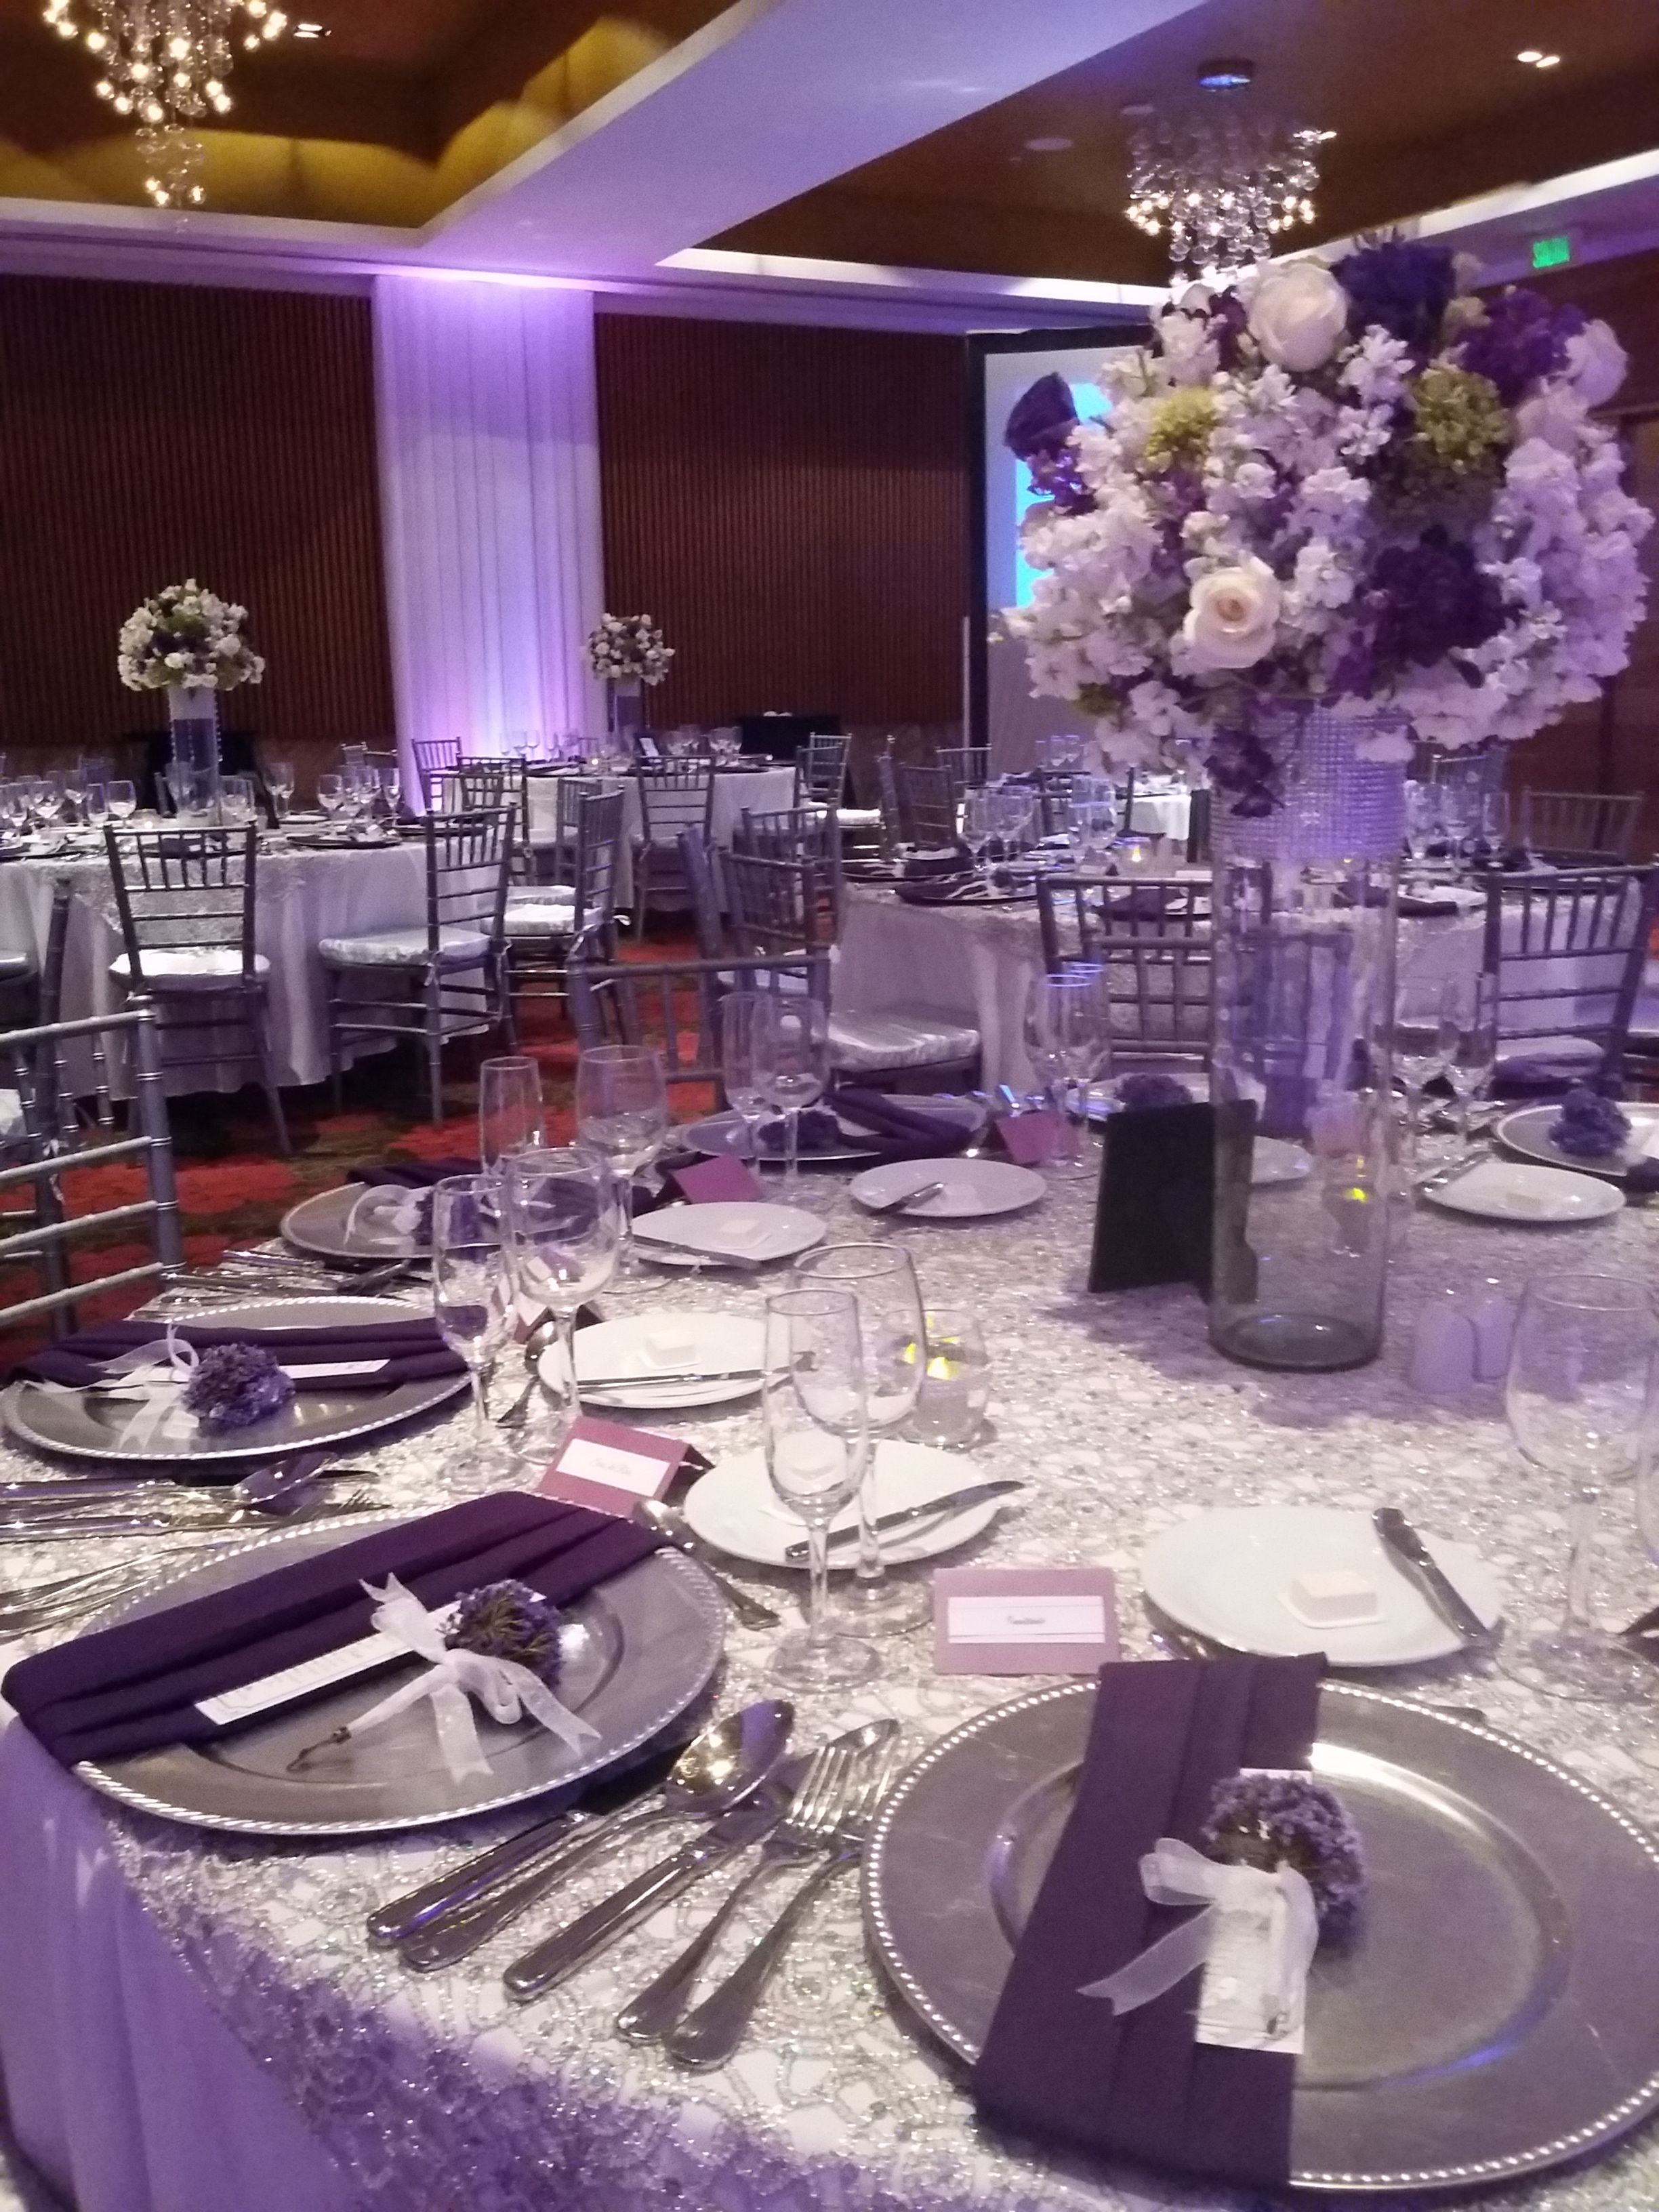 Decoraci n de mesa en color plata y morado bodas salon - Decoracion de salon ...